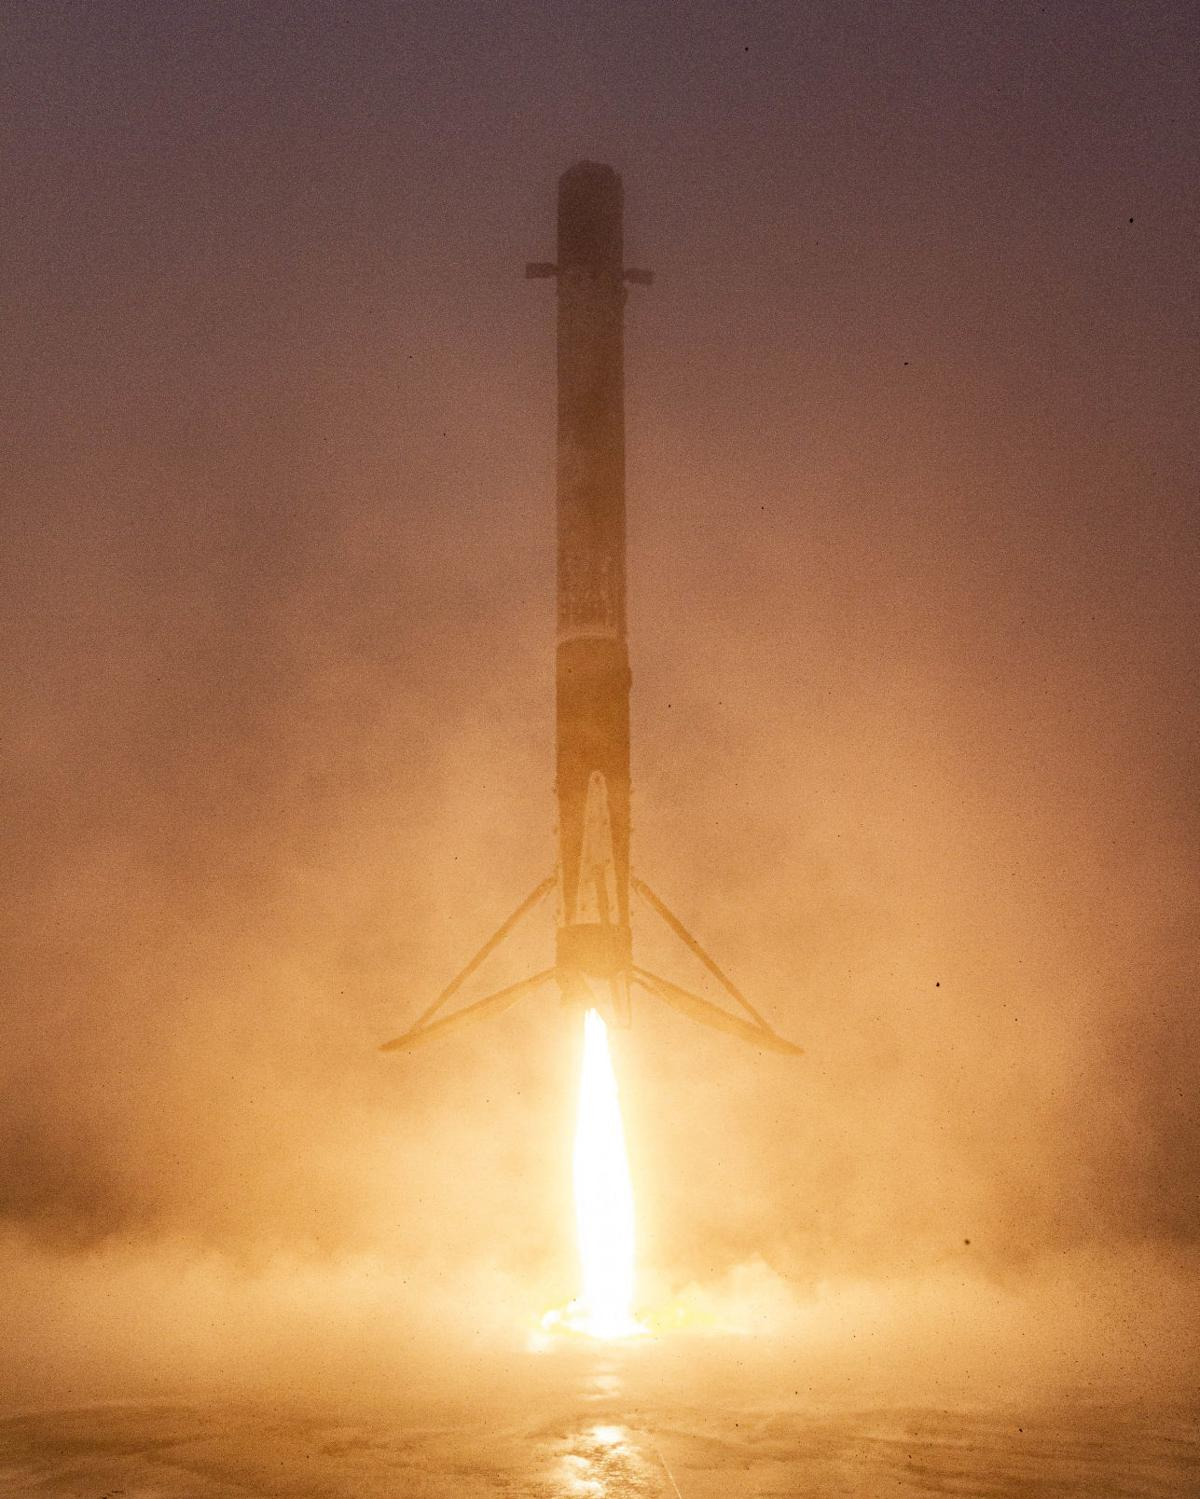 Vandenberg Launch Schedule 2020 Bringing the boom: SpaceX rocket successfully launches, lands back